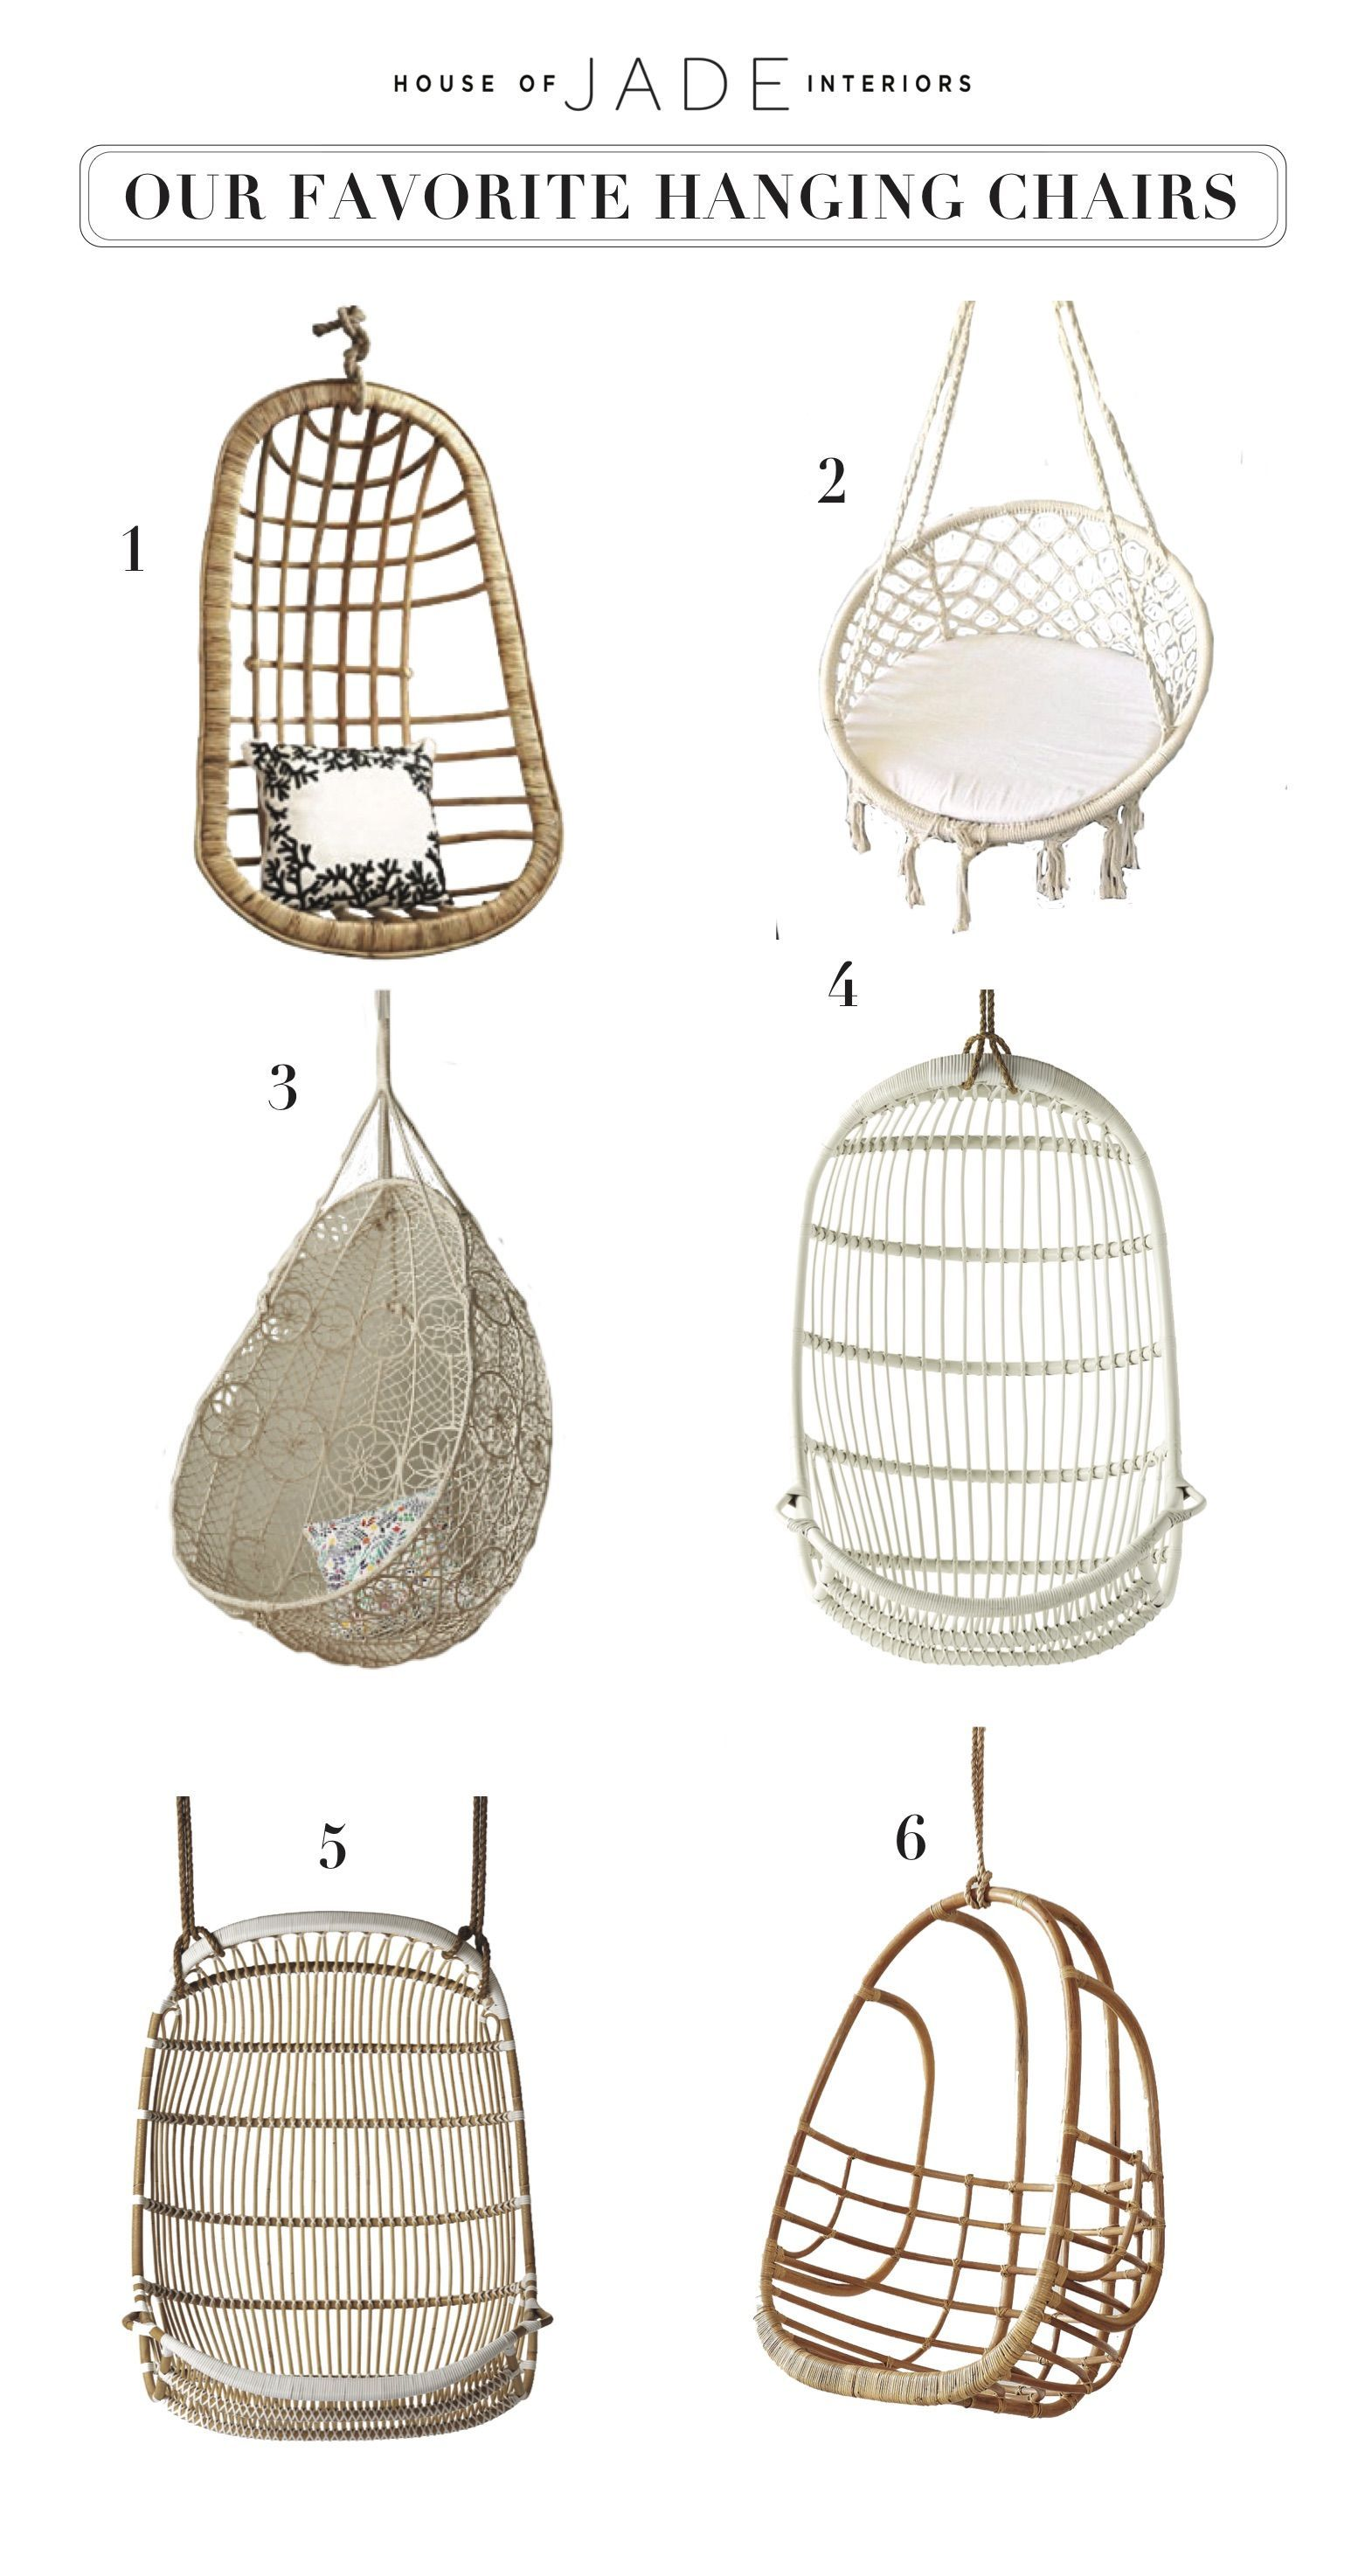 Hanging Chairs Are A Fun Way To Make A Space Feel More Livable And Casual.